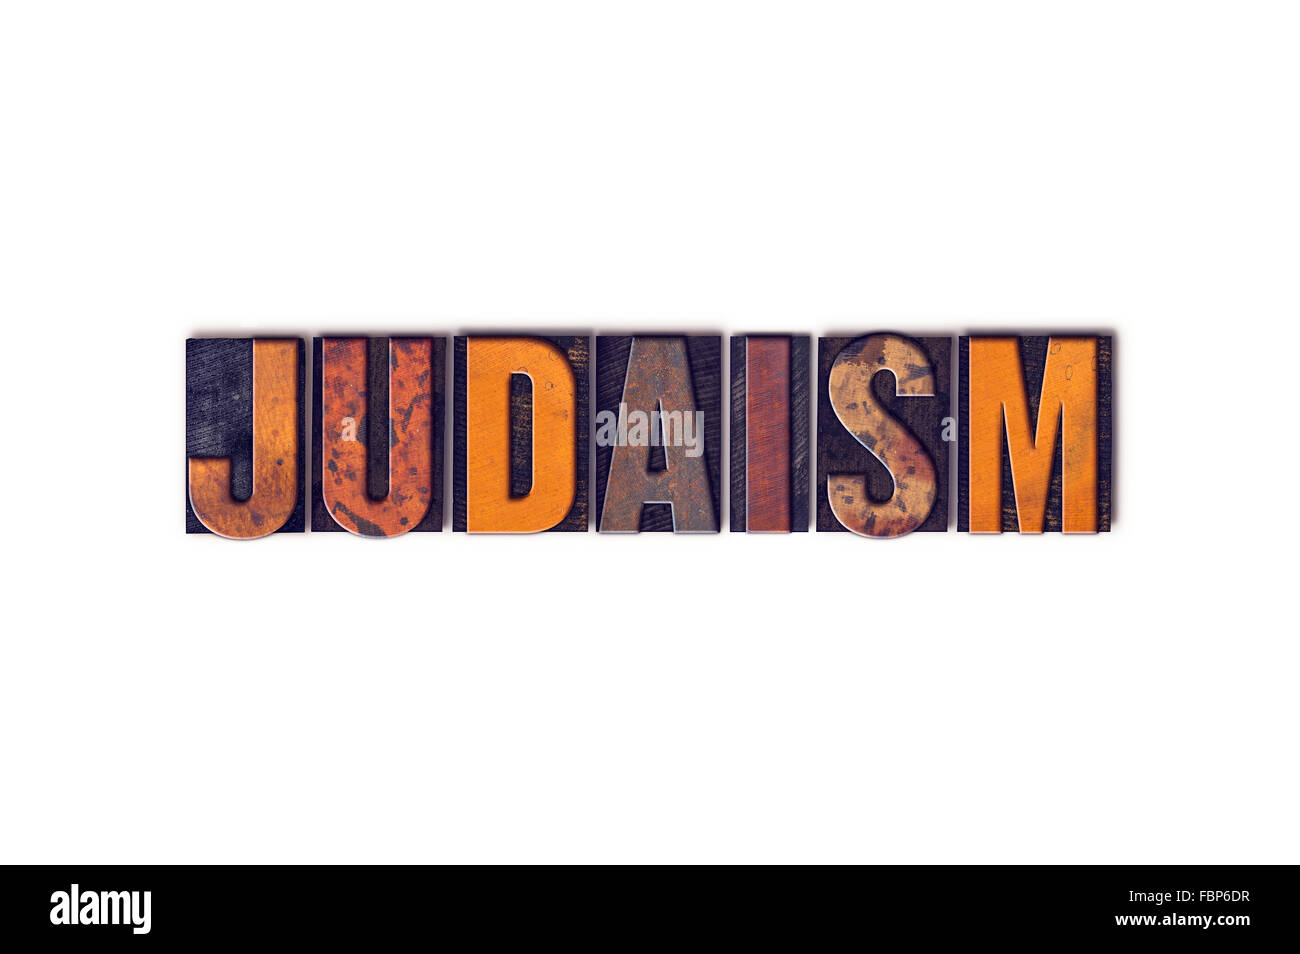 The word 'Judaism' written in isolated vintage wooden letterpress type on a white background. - Stock Image